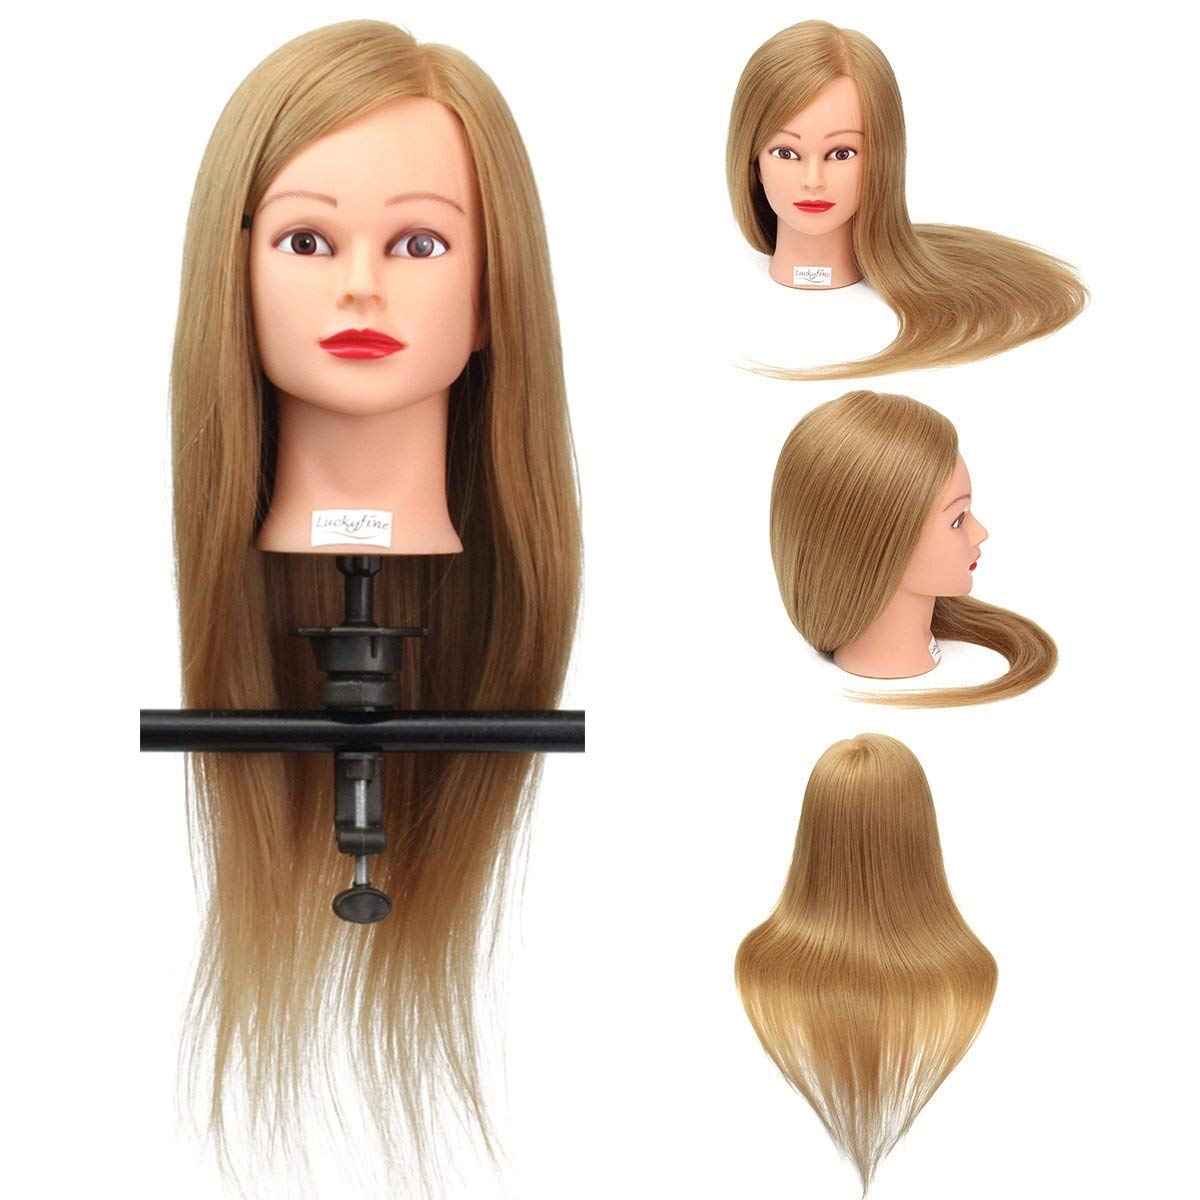 Training Head, Luckyfine 26 '' Golden Hairdressing Head 35% Real Hair + High Temperature Wire Long Hair Hairstyling Mannequin Training Head With Holder For Home and Professional Use